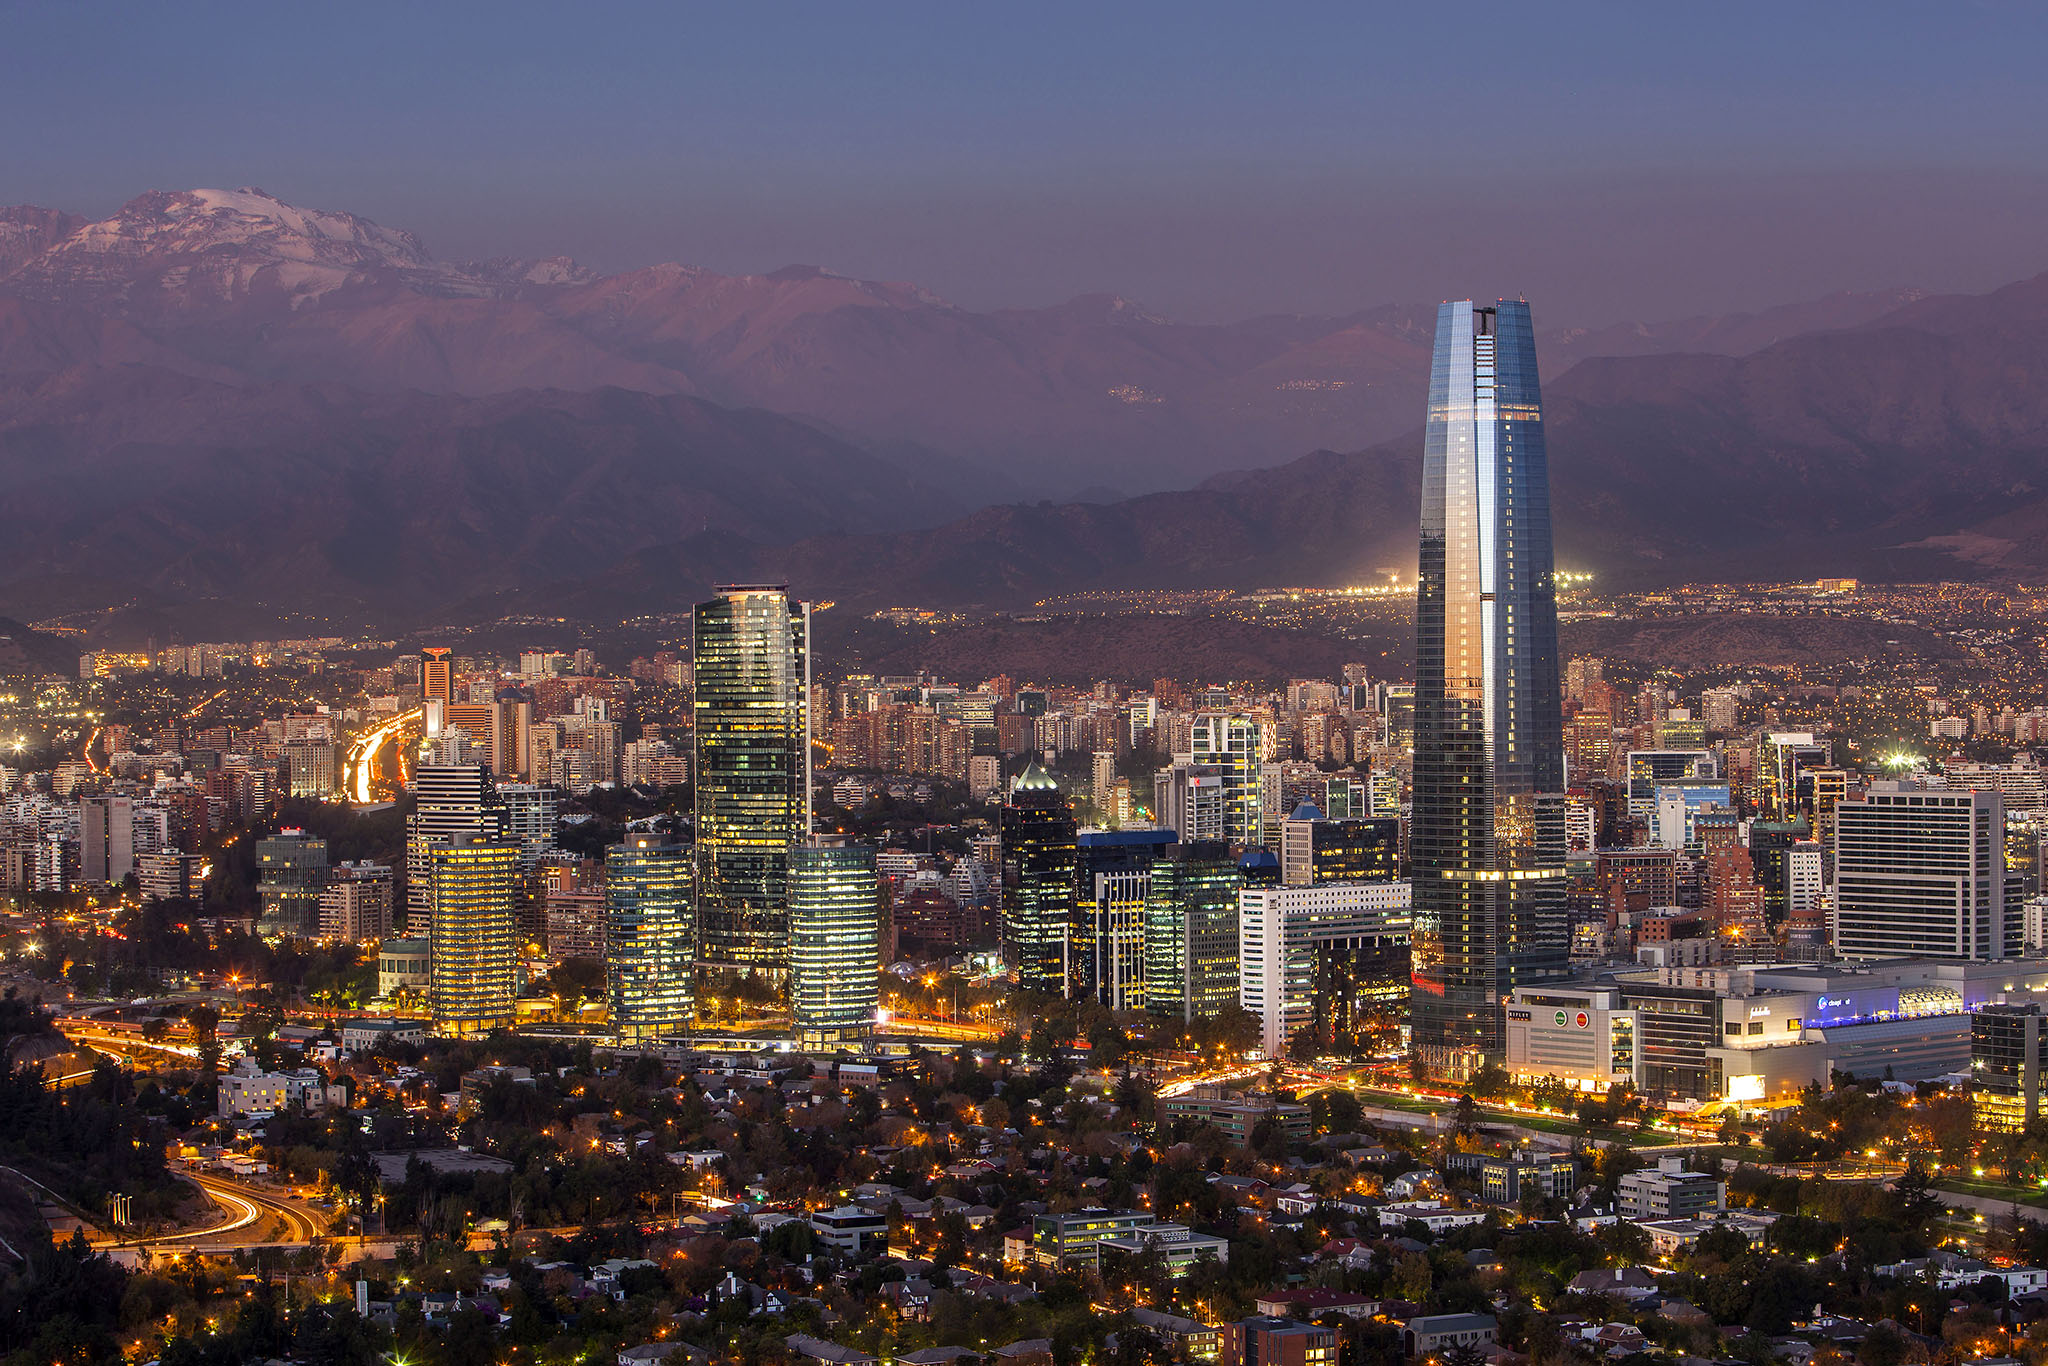 night-andes-mountains-santiago-chile.jpg